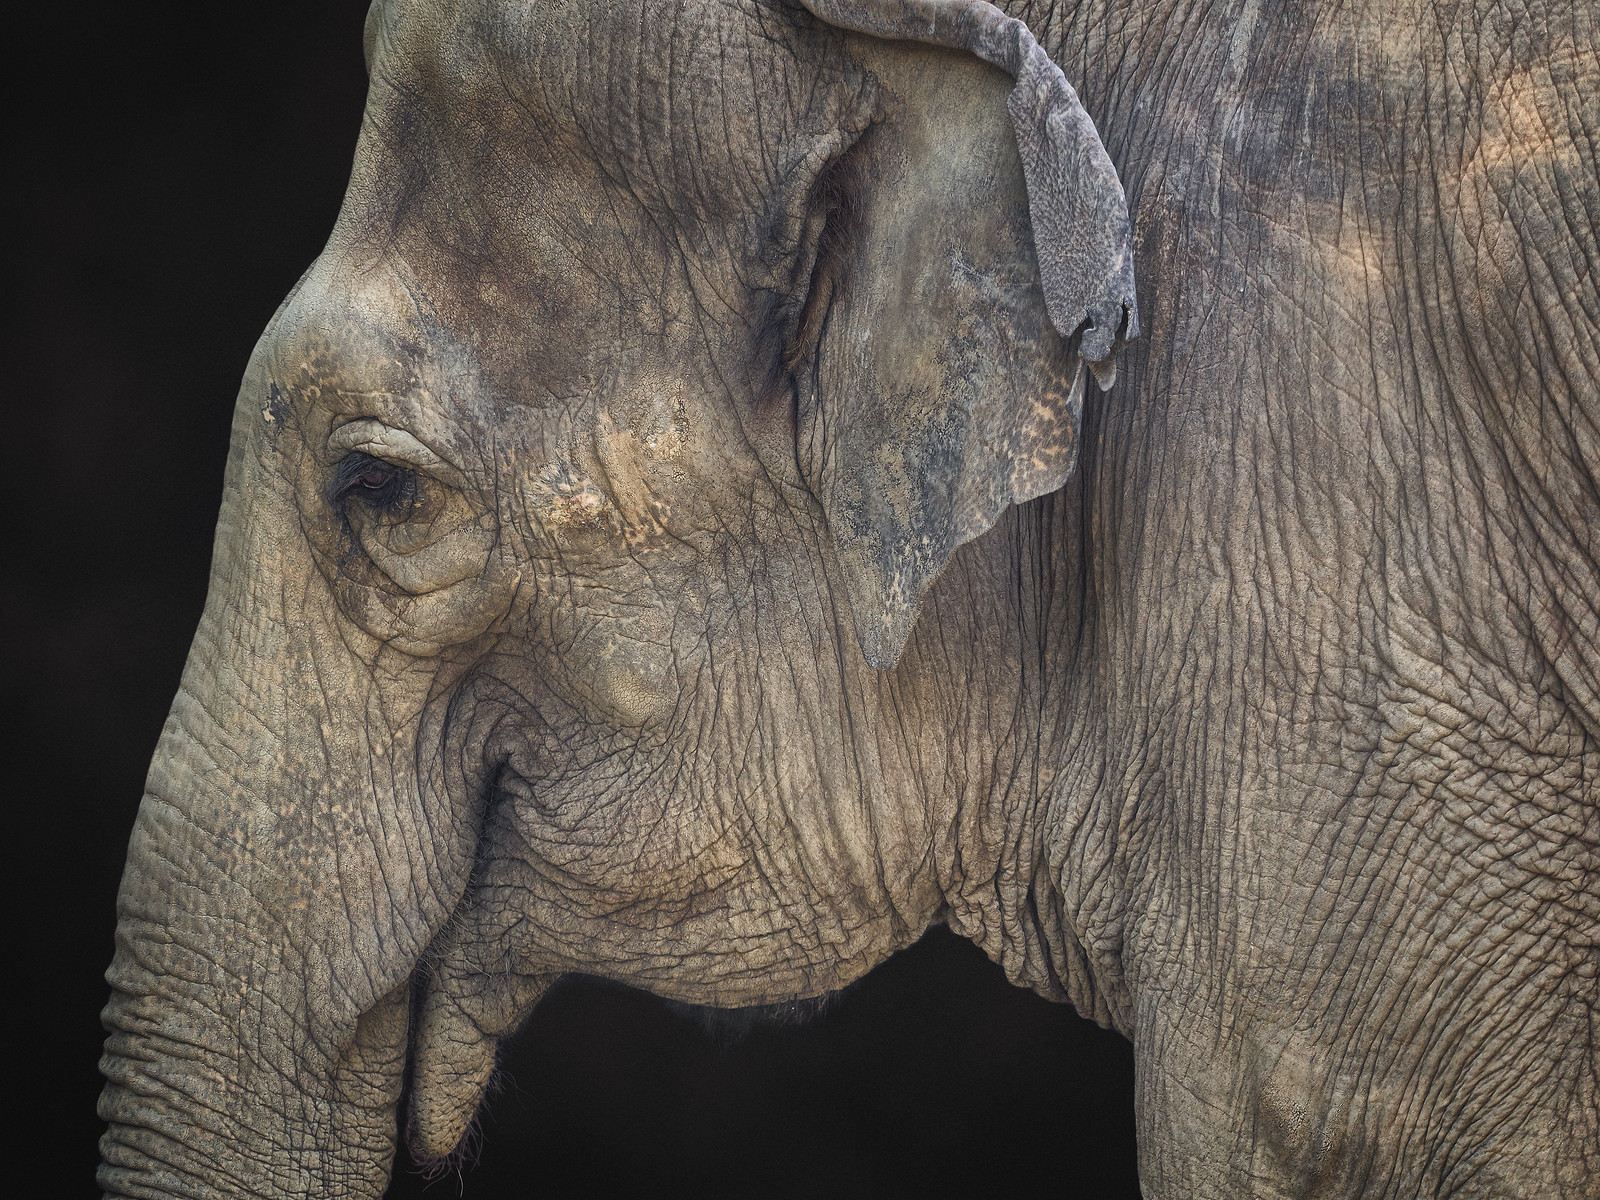 Closeup of an Asian Elephant